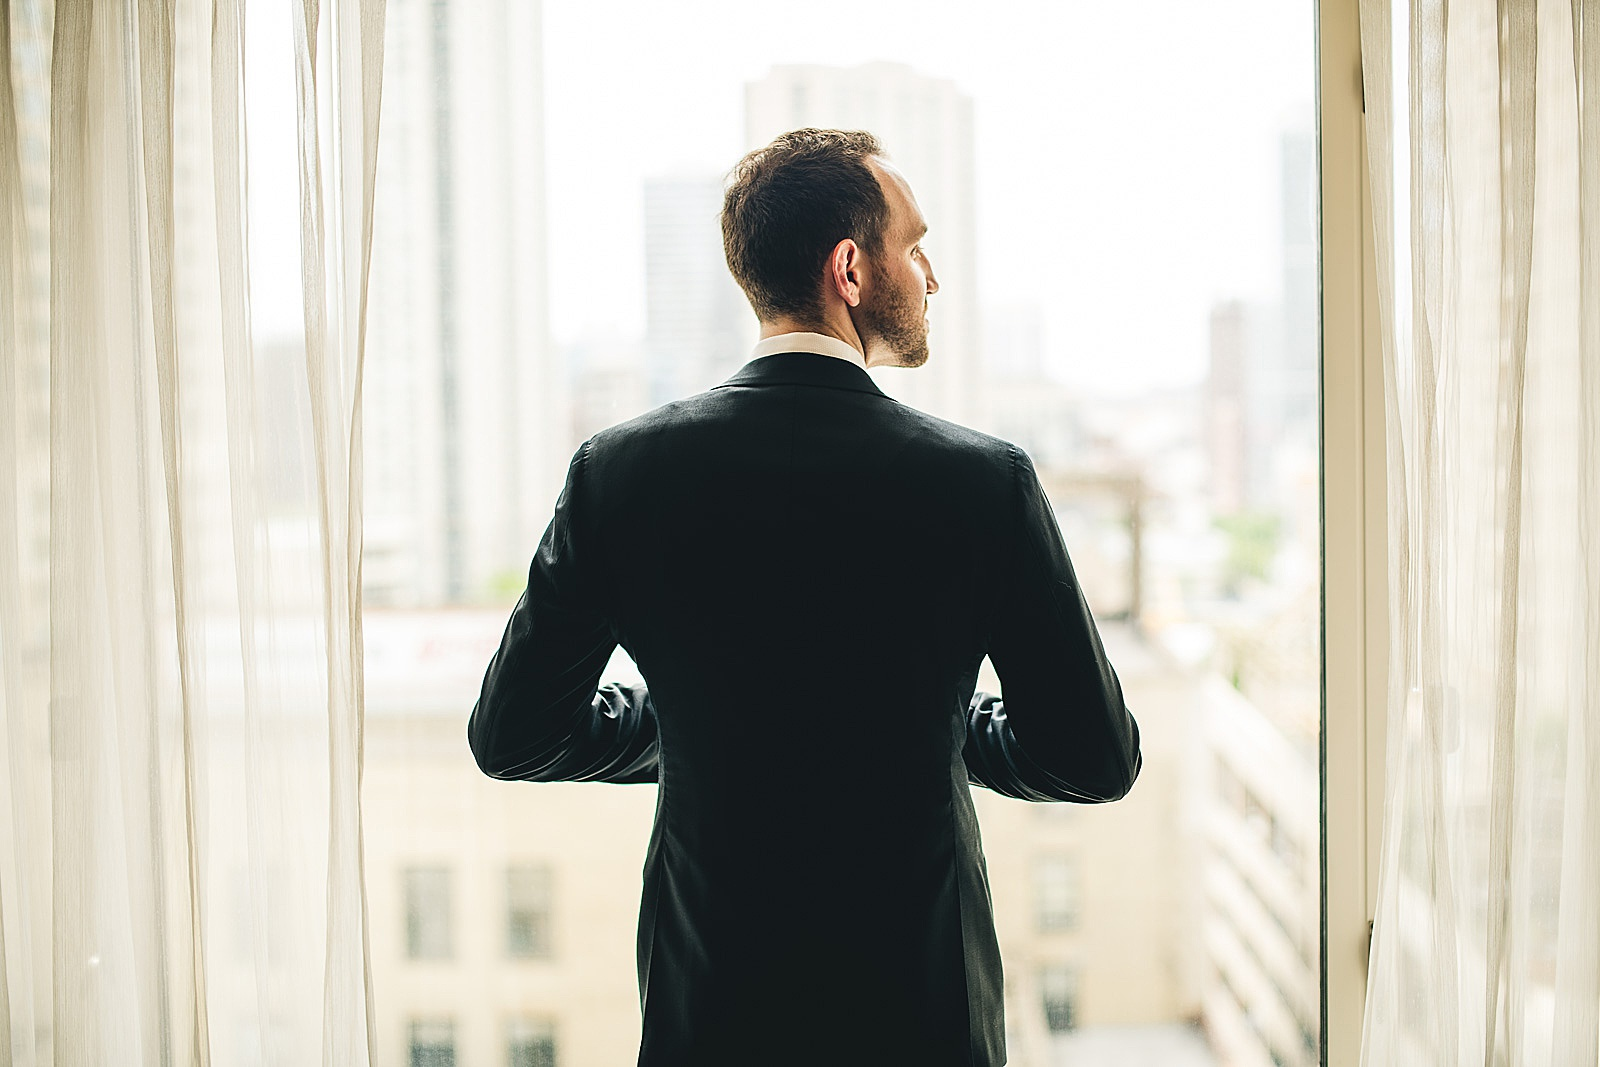 10 groom portrait in chicago peninsula hotel - Susie + Eric's Jewish Wedding at the Peninsula Hotel in Chicago